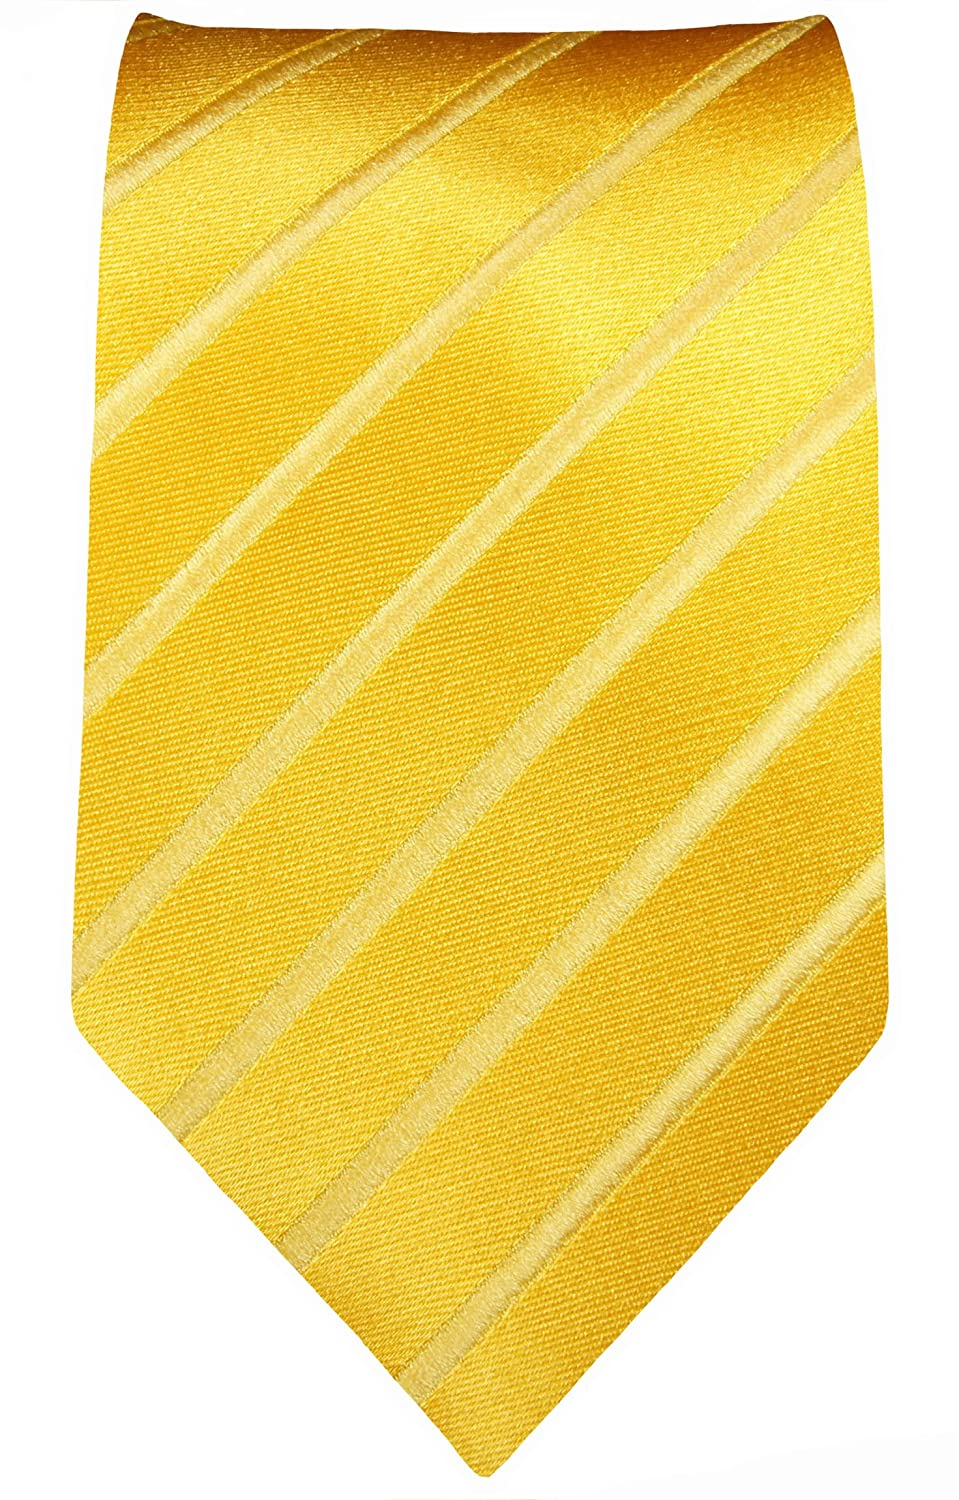 100/% Silk Tie a Pocket Square by Paul Malone